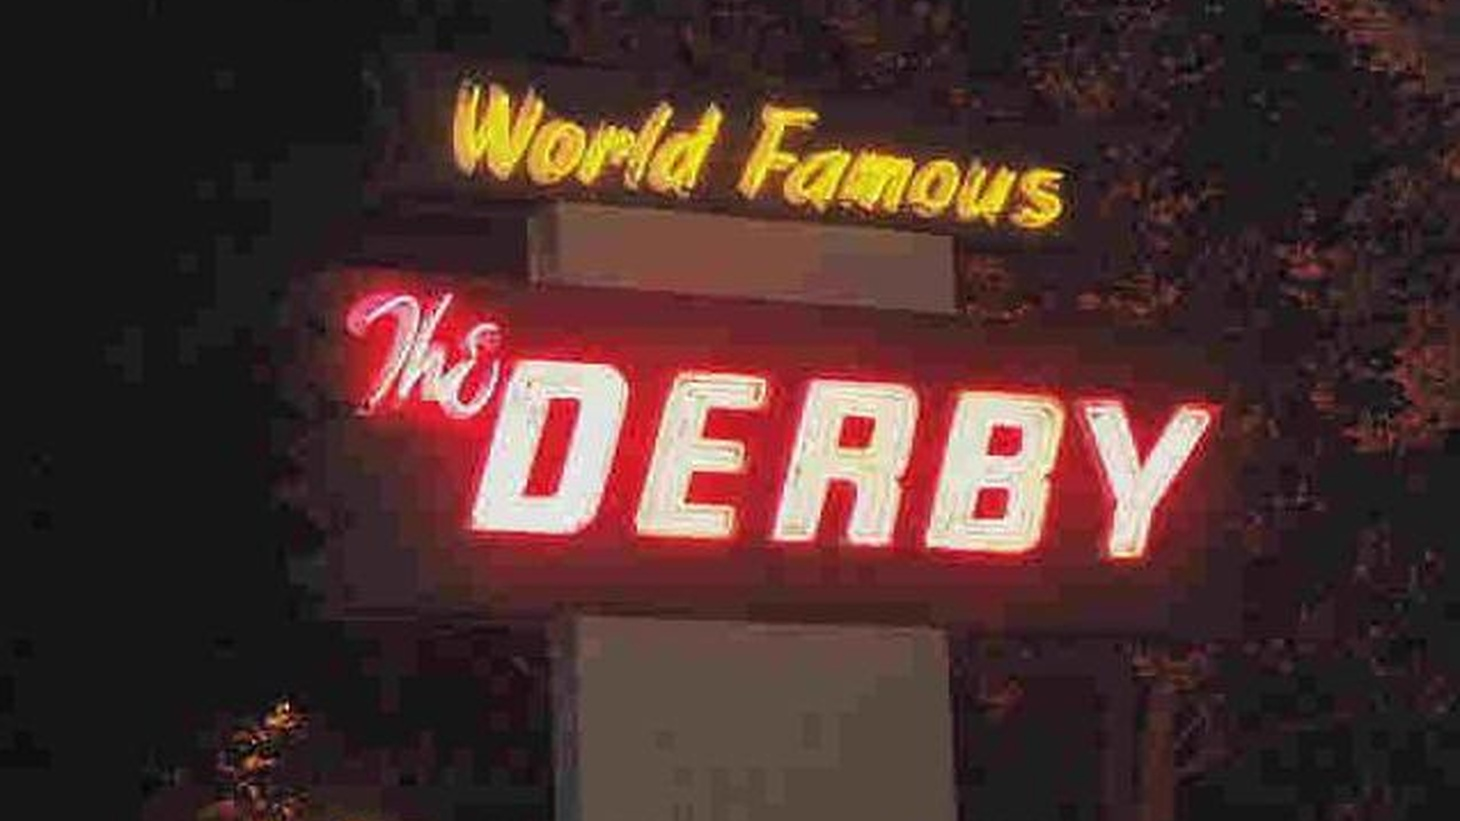 Jonathan Gold revisits a restaurant he originally reviewed 20 years ago. The Derby, which opened in 1922 in Arcadia, intended to cater to jockeys and horse racing fans.